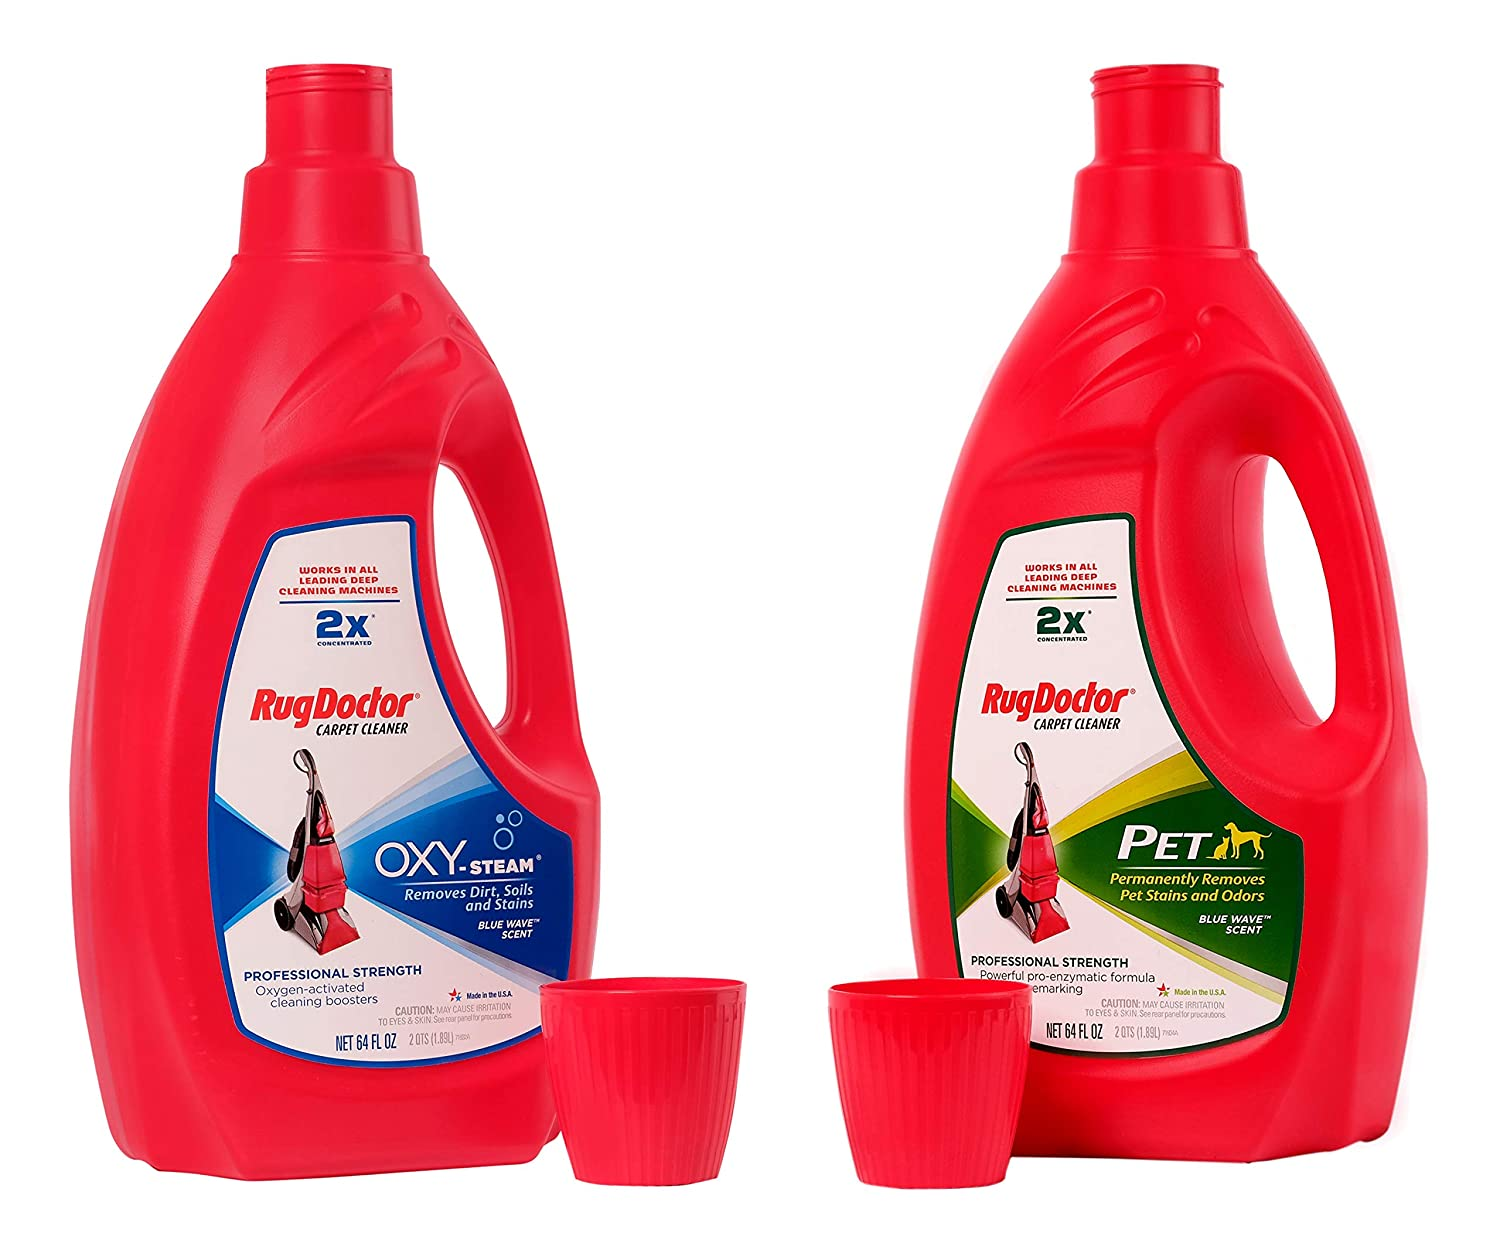 Rug Doctor 64 Ounce Oxy Steam Carpet Cleaner Solution Super Concentrated Solution Works in All Leading Deep Cleaning Machines bundle with 64 Ounce Doctor Pet Formula Concentrated Carpet Cleaner